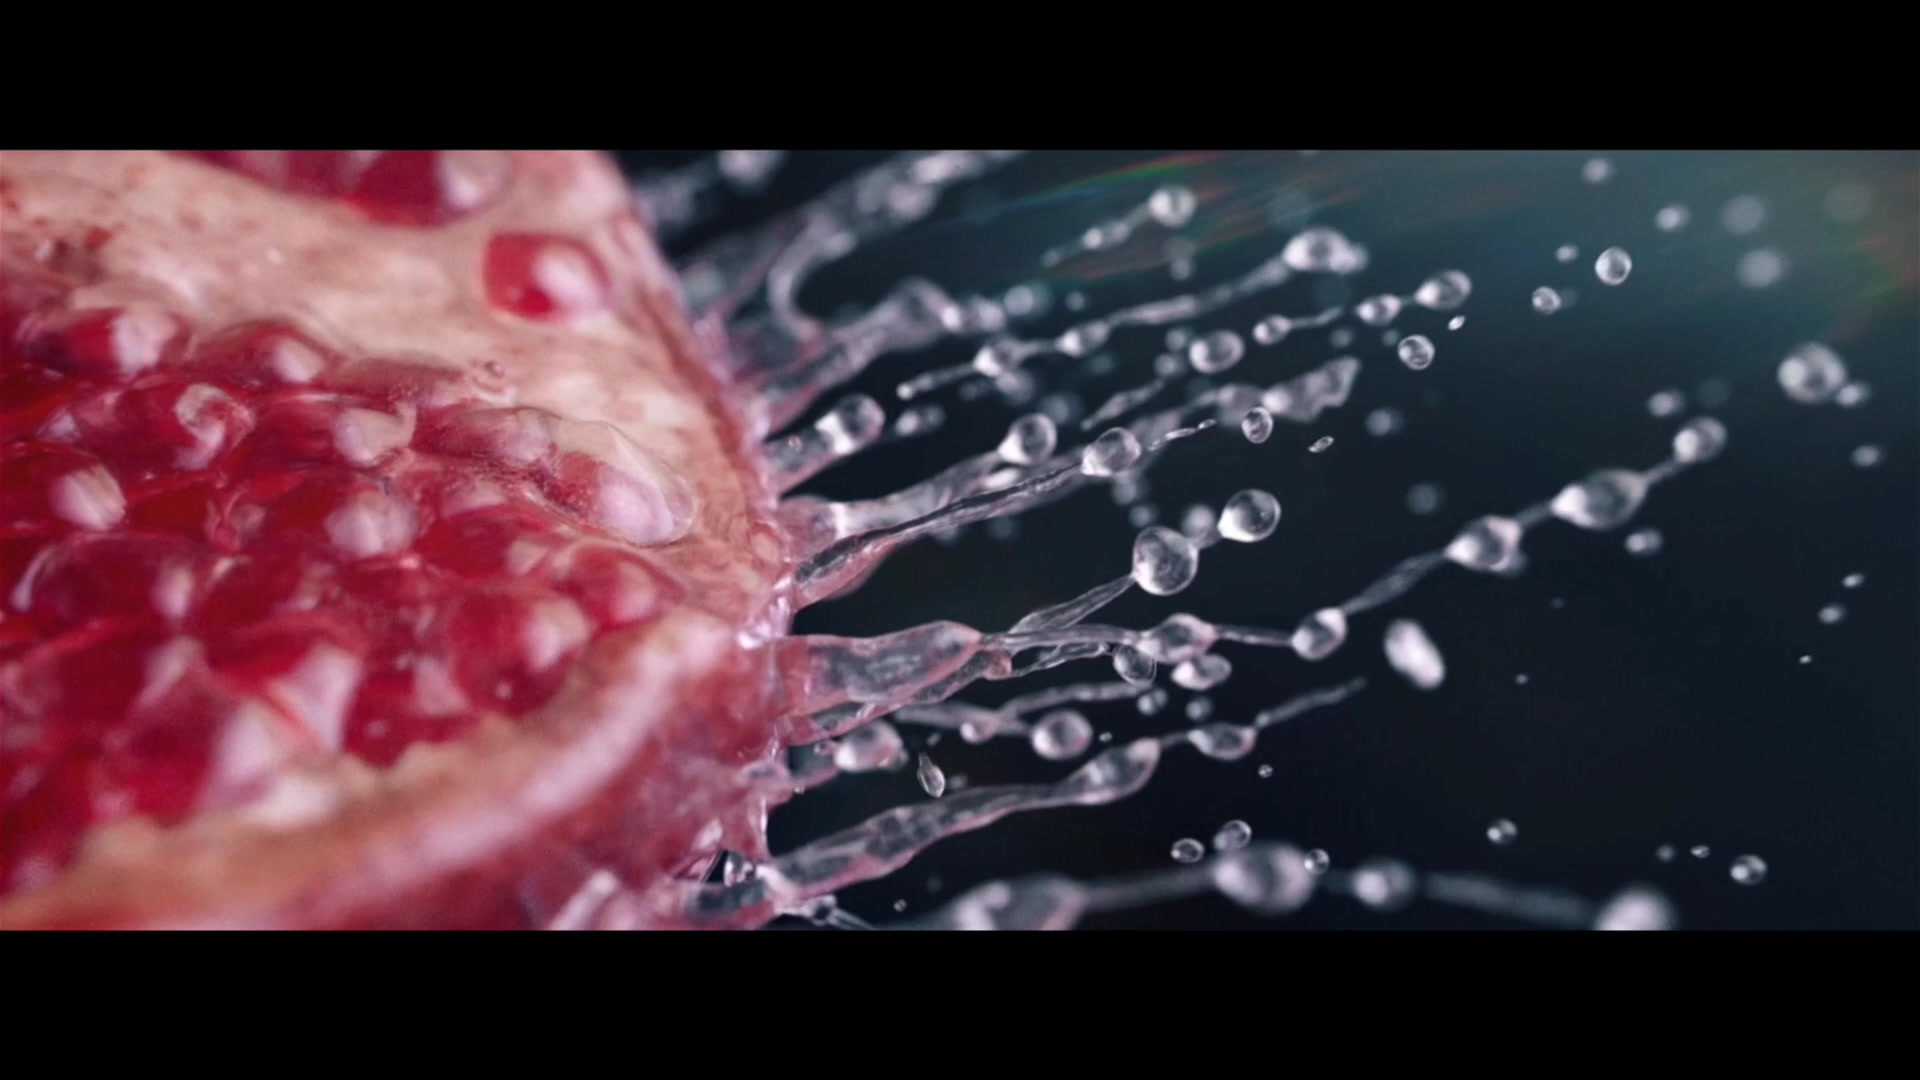 Steelworks_CGI Reel-Beauty-Particle.mp4